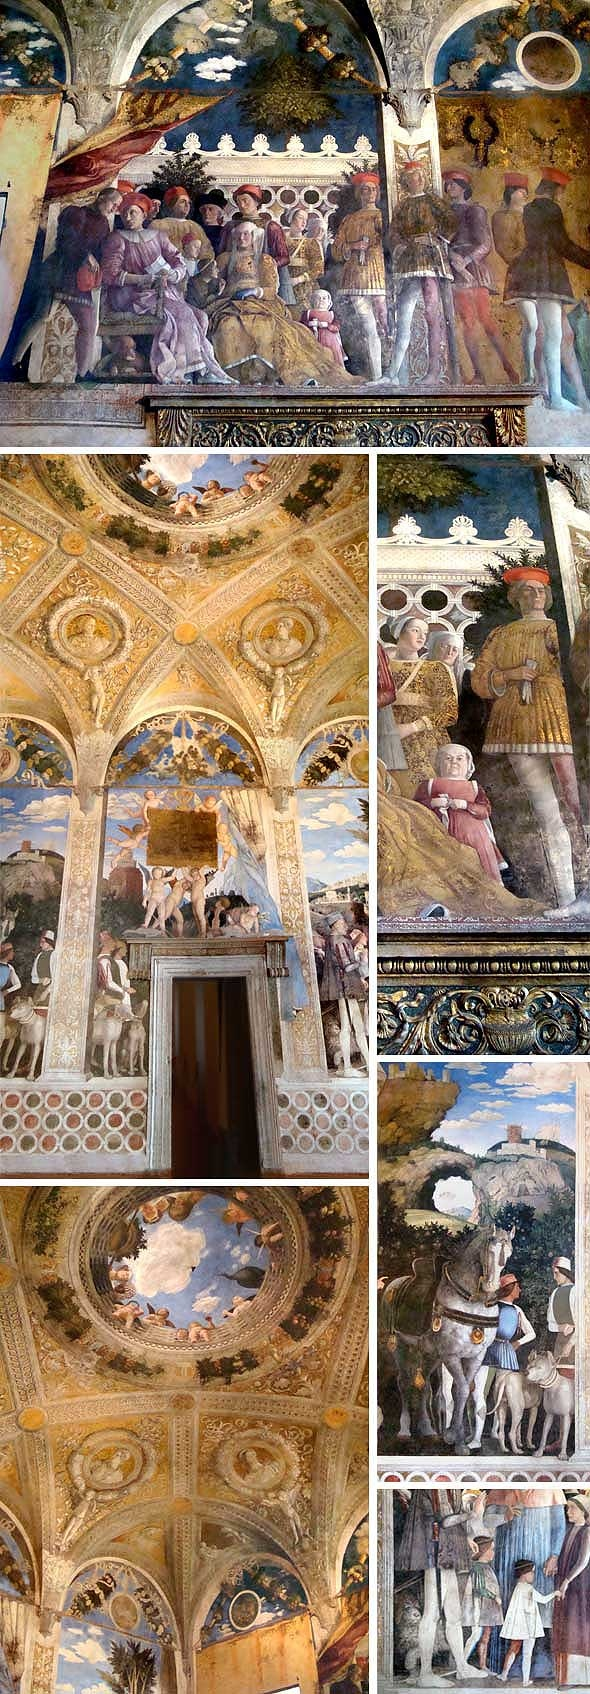 Andrea Mantegna: Camera Picta inside the Palazzo Ducale